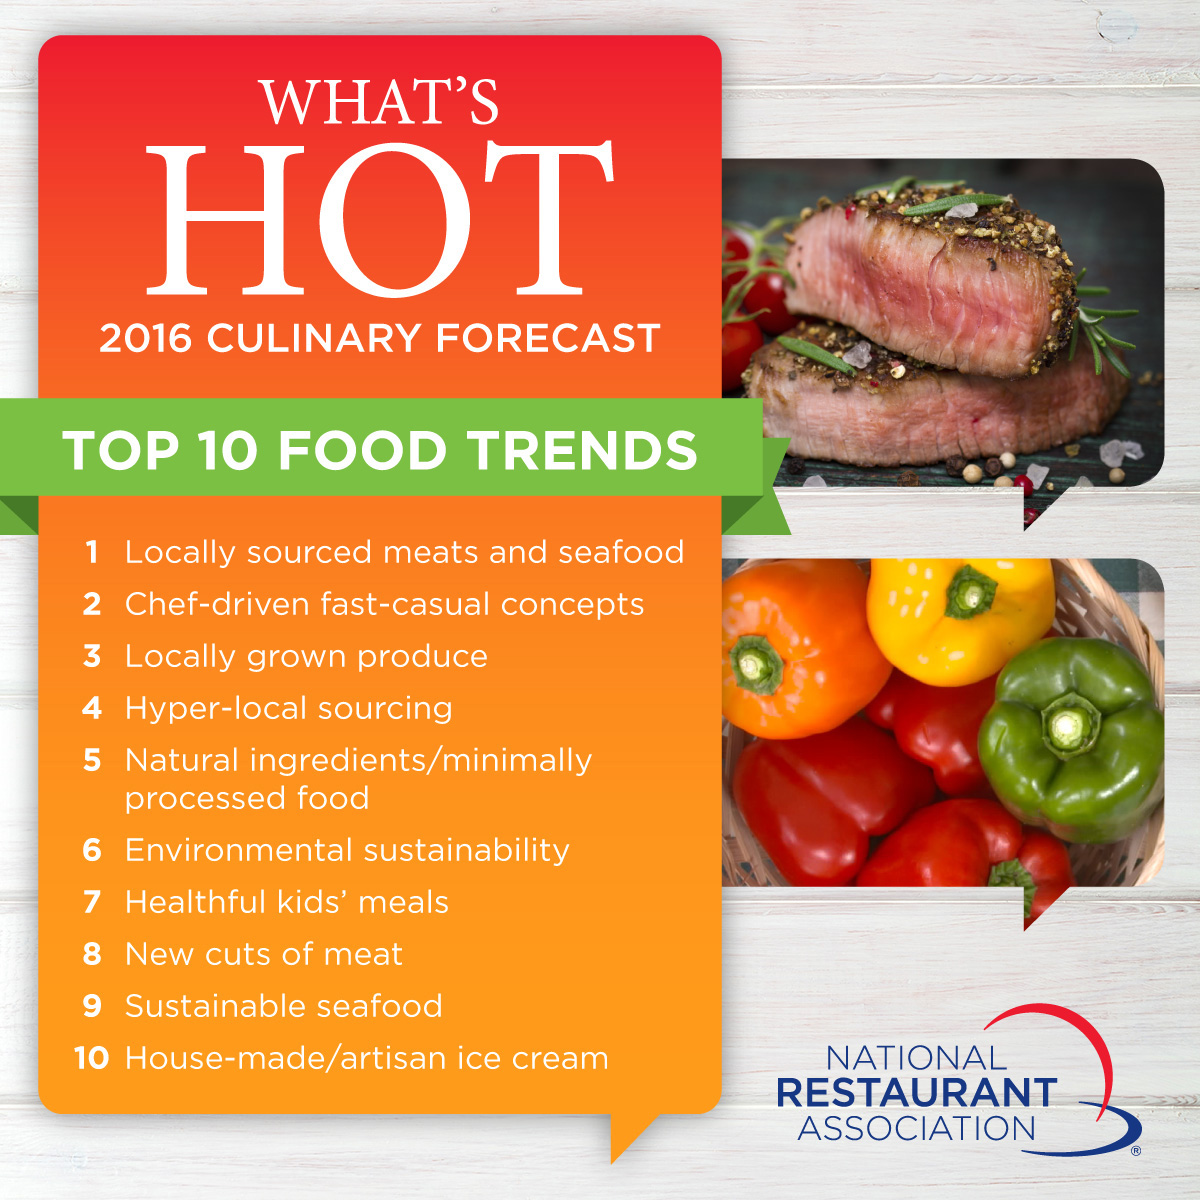 What's Hot 2016 Culinary Forecast: Top 10 Food Trends